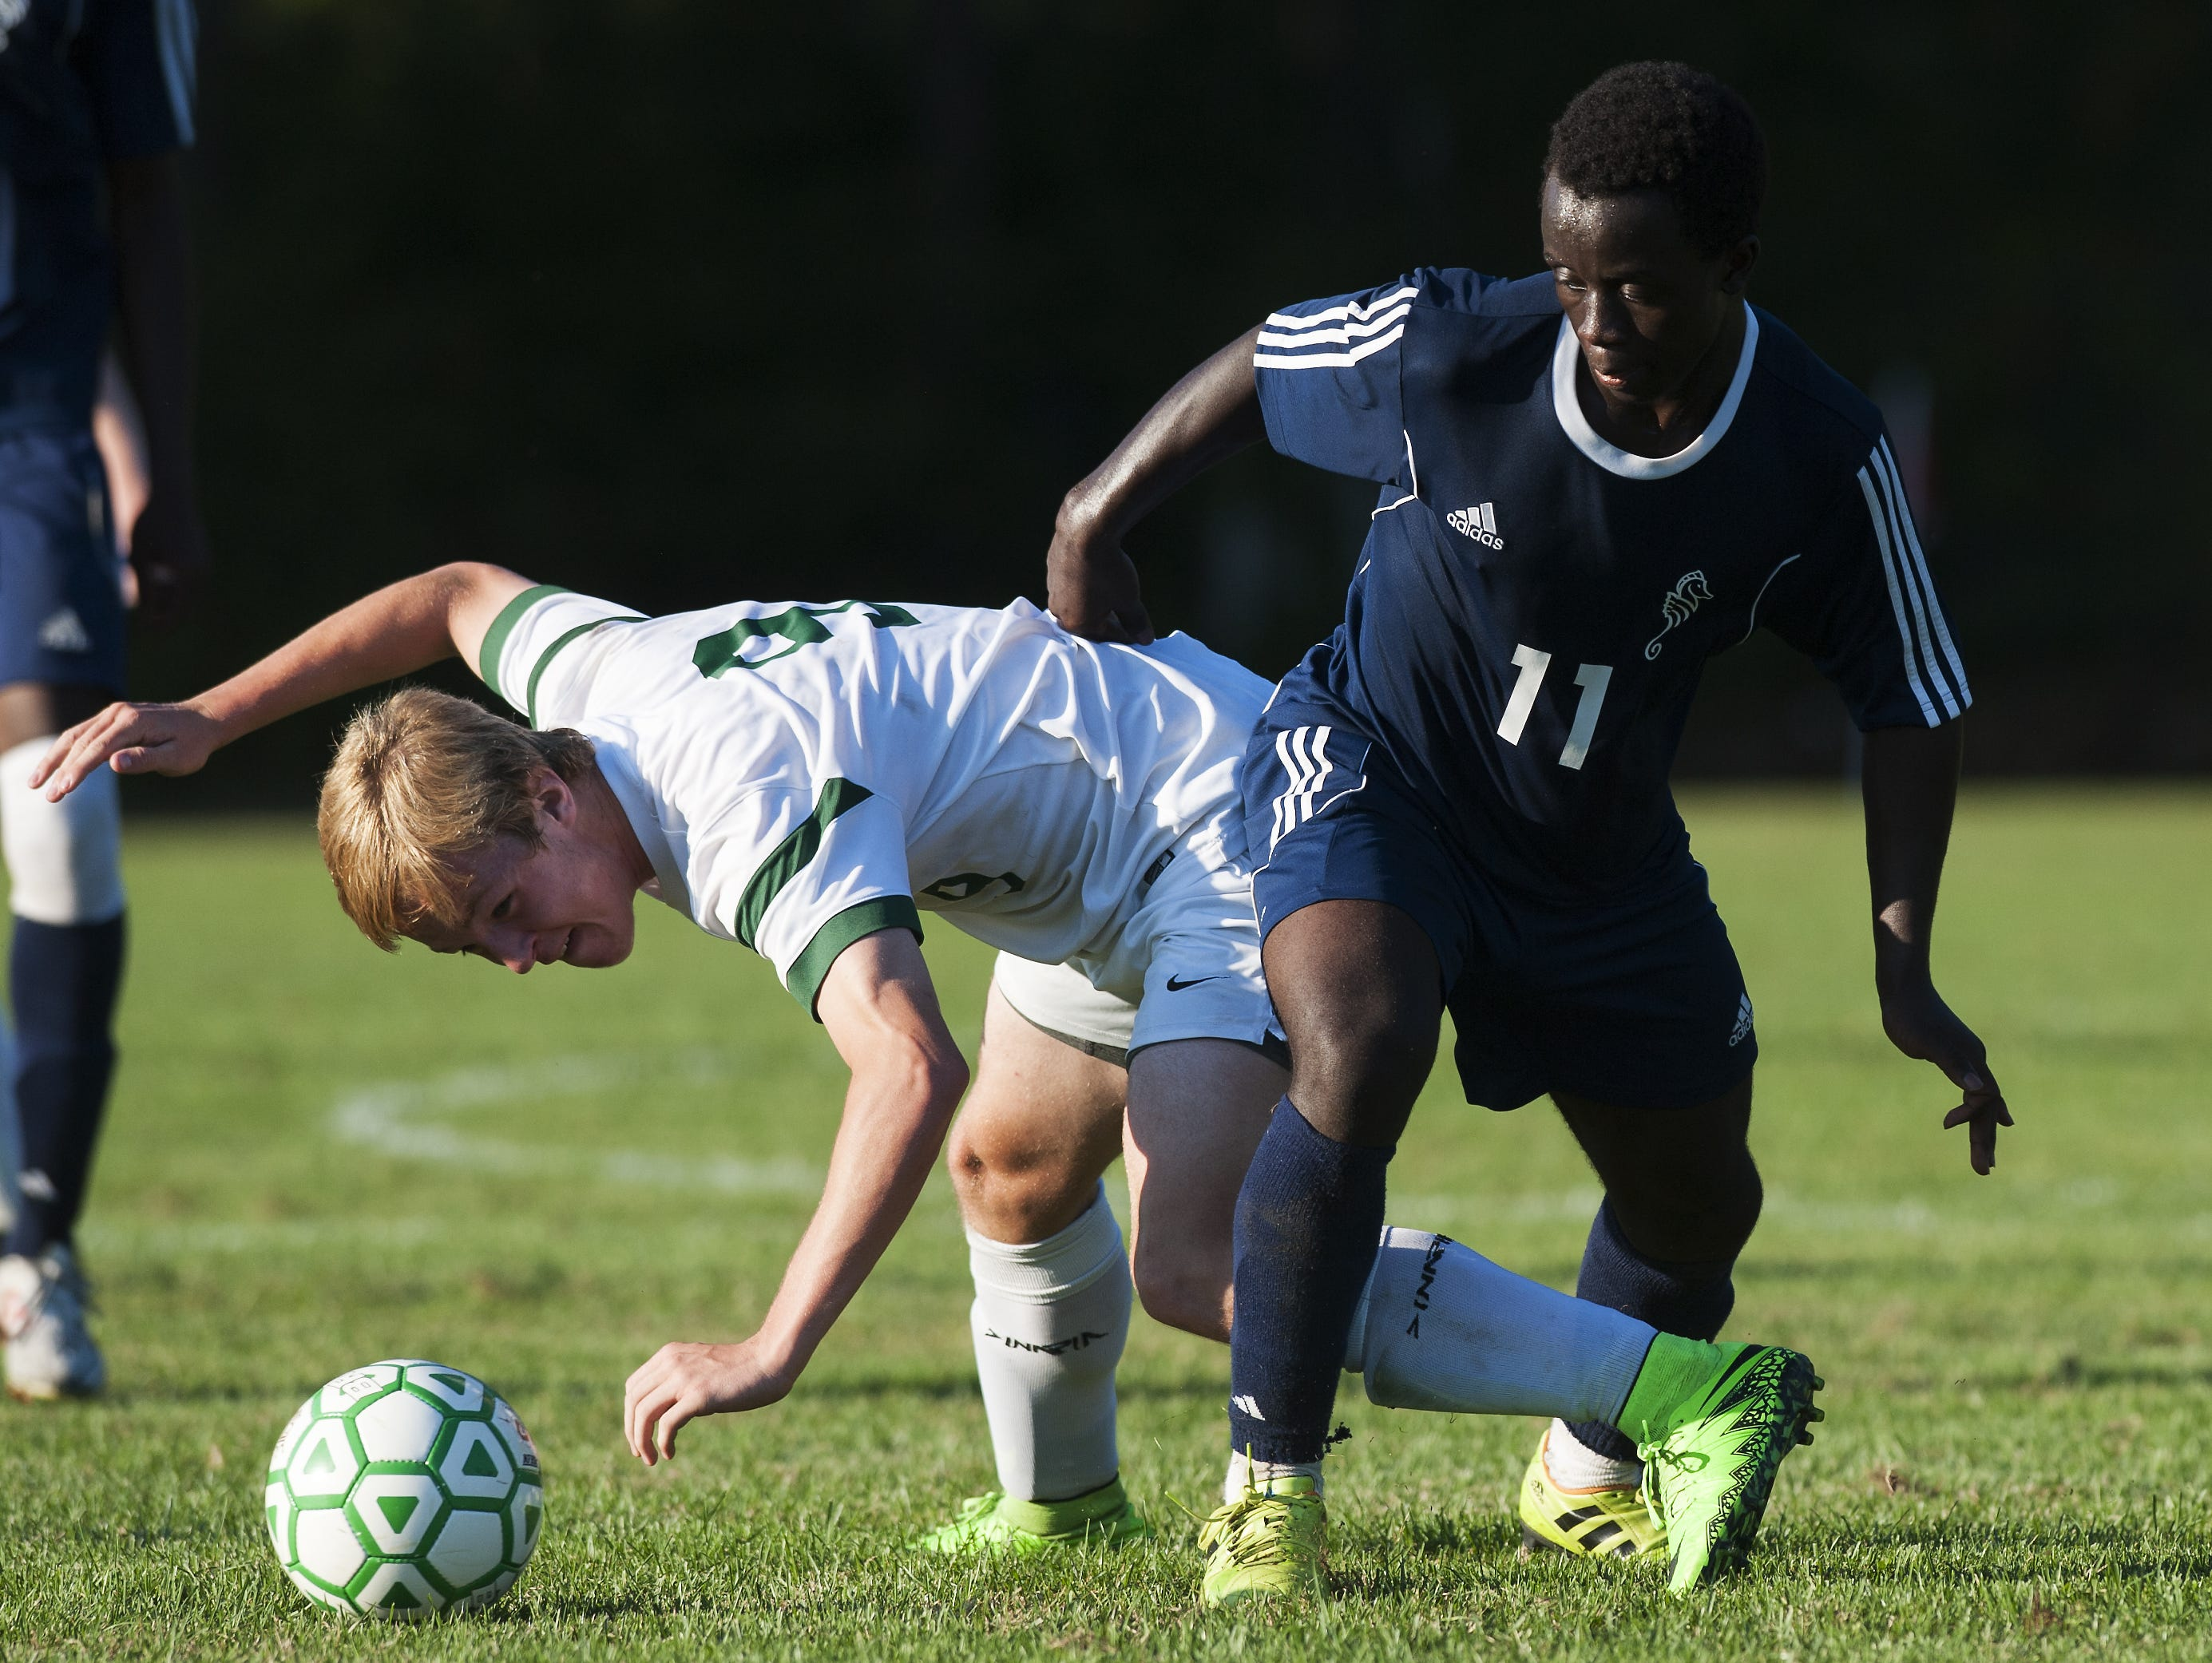 Rice's Nate Cary (9) and Burlington's Seraphin Iradukunda (11) battle for the ball during a high school boys soccer game against Rice on Tuesday.